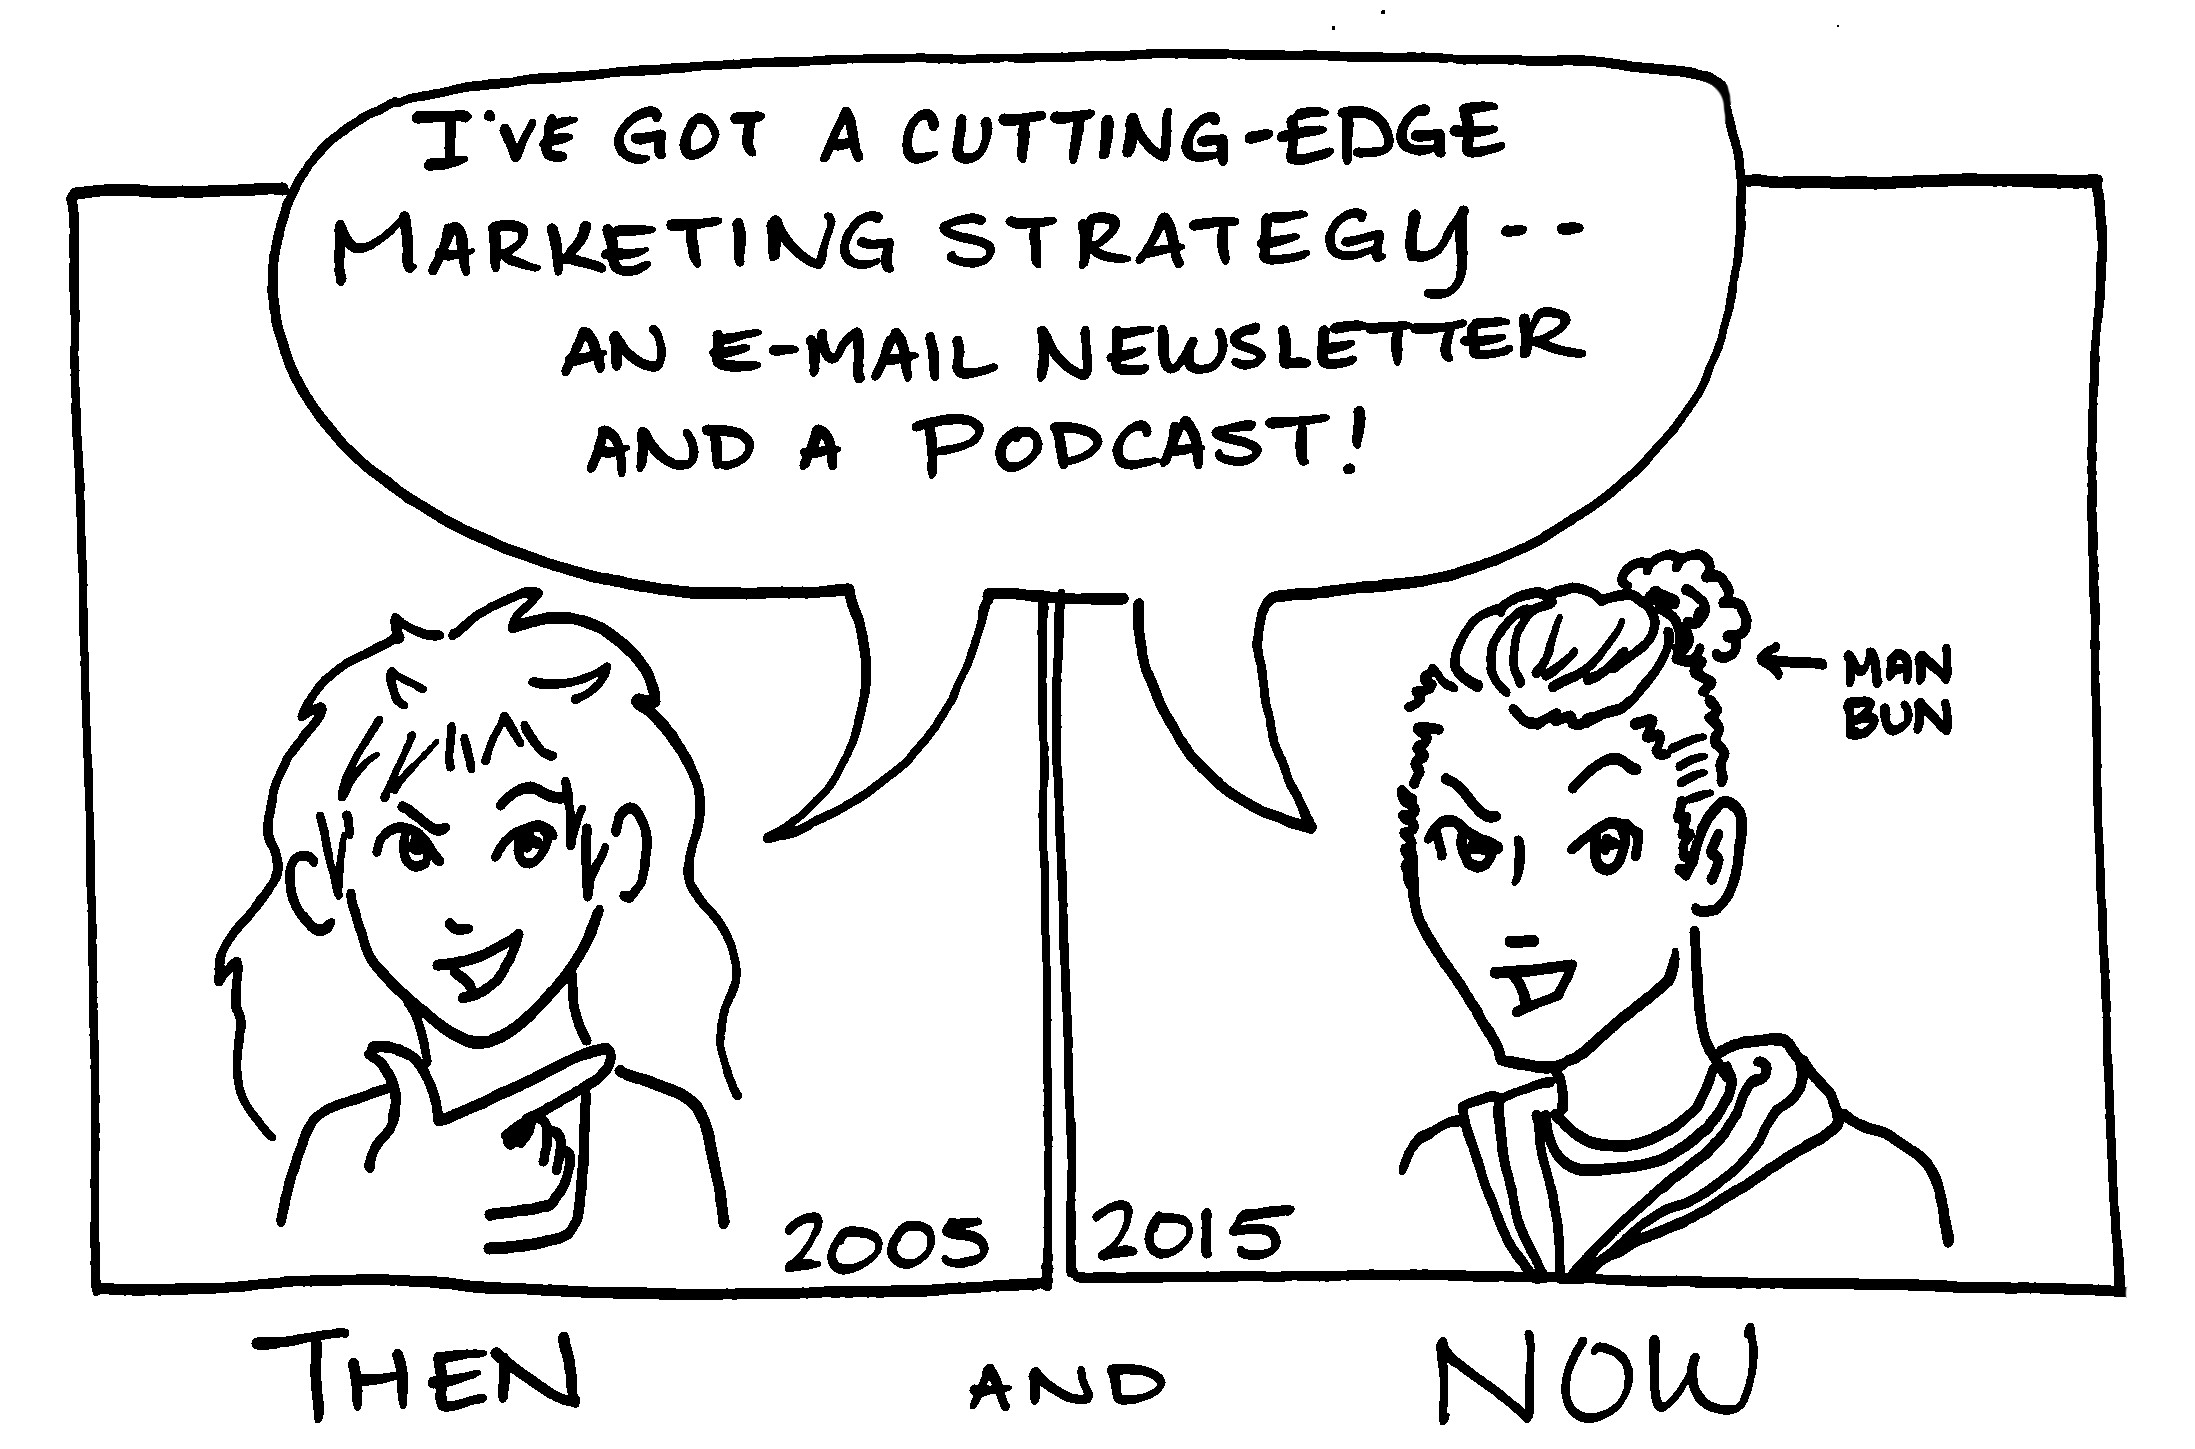 Marketing Resources for 2016: Old School Meets New Cool